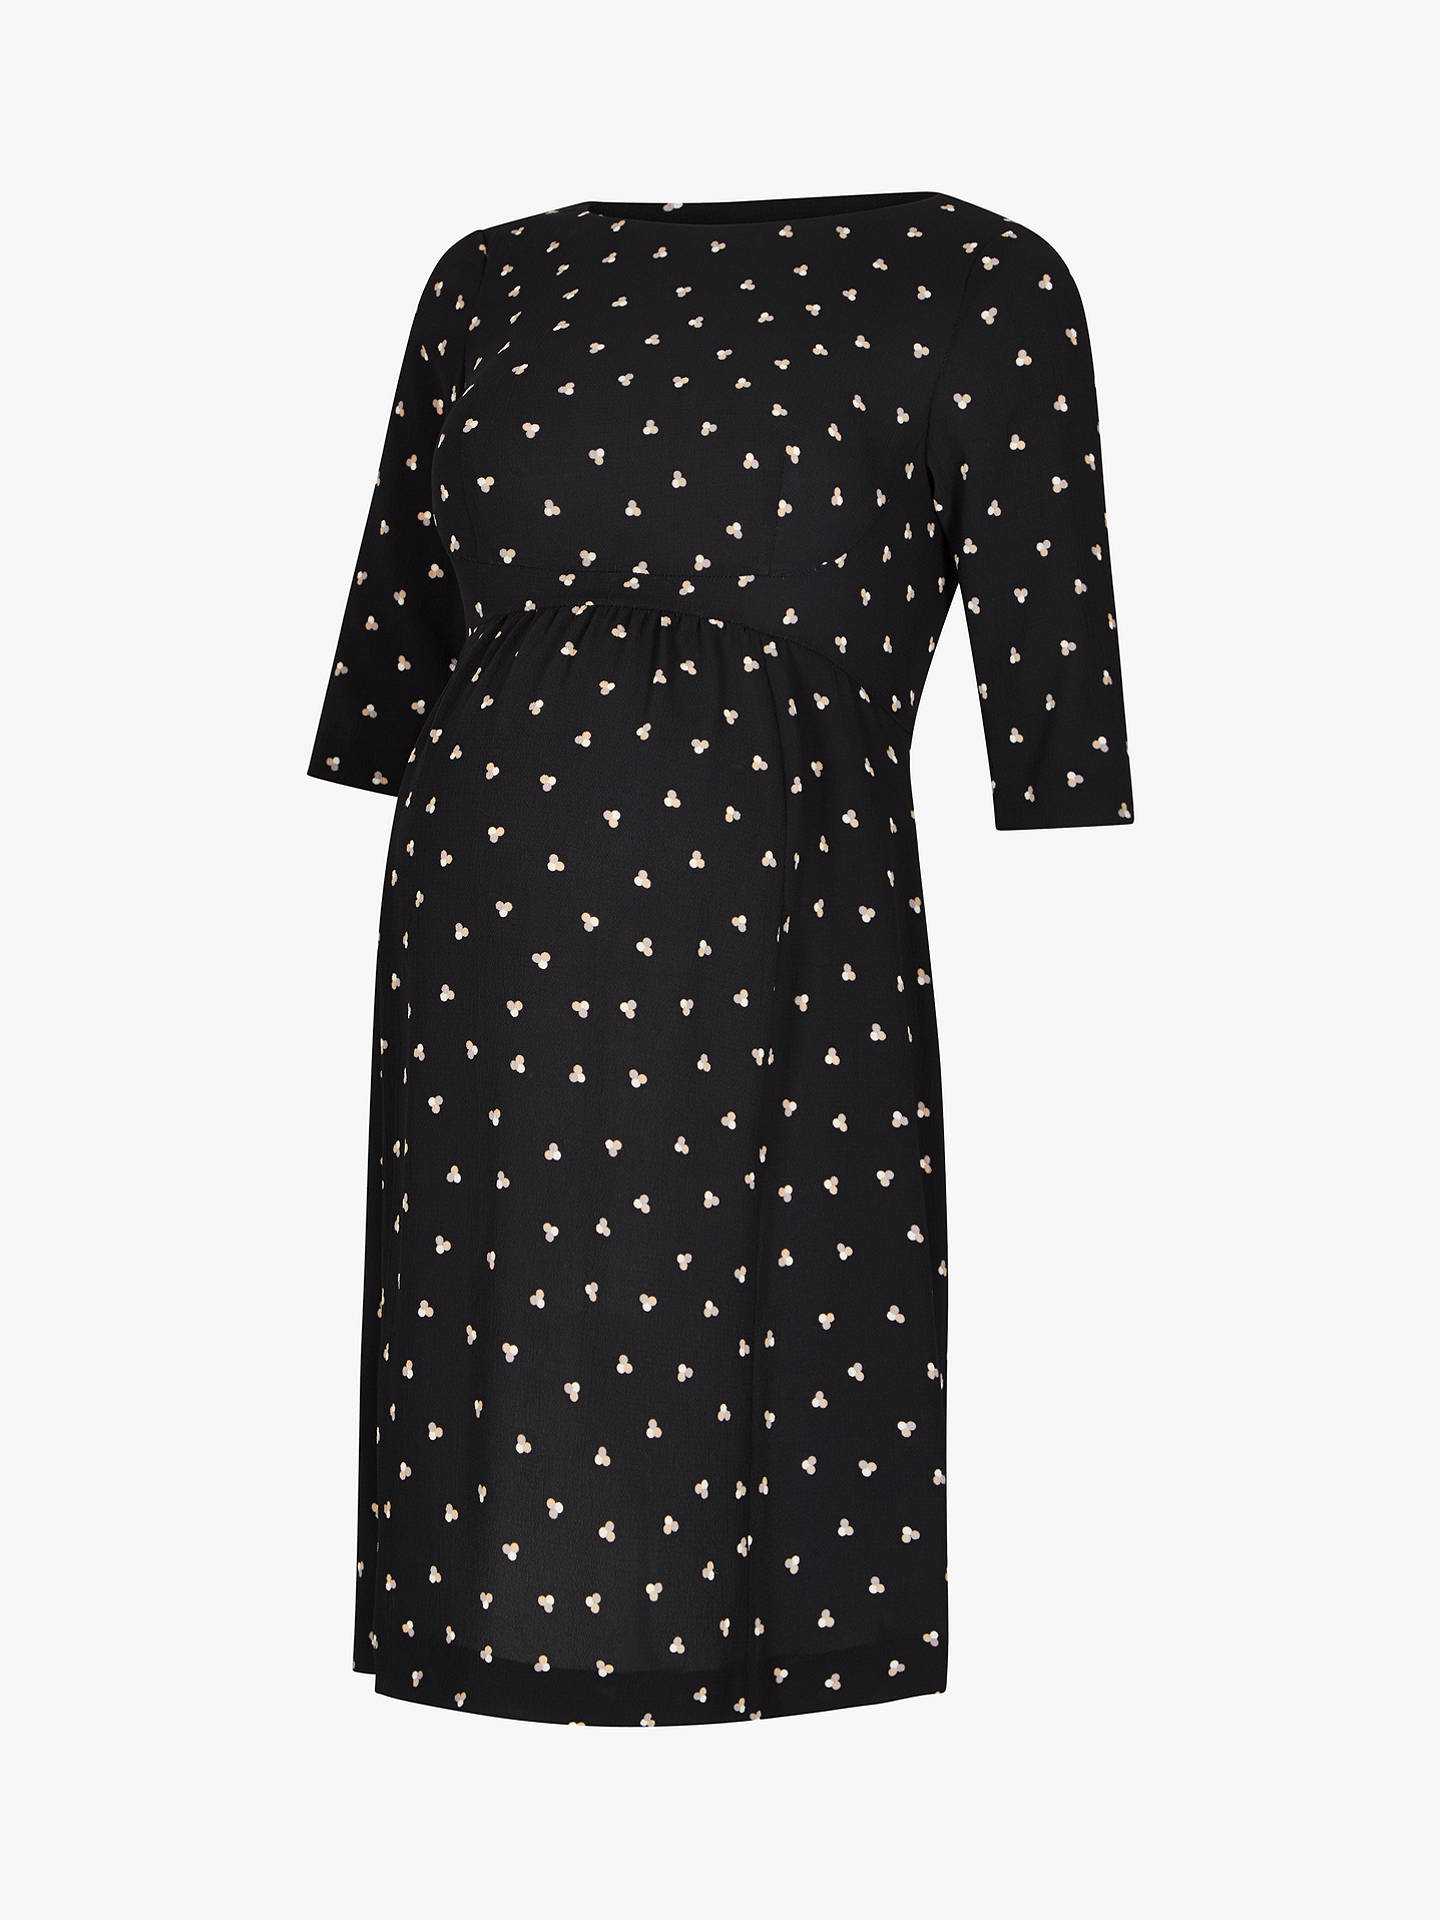 65289721beda3 ... Buy Séraphine Minnie Dots Maternity Dress, Black, 8 Online at  johnlewis.com